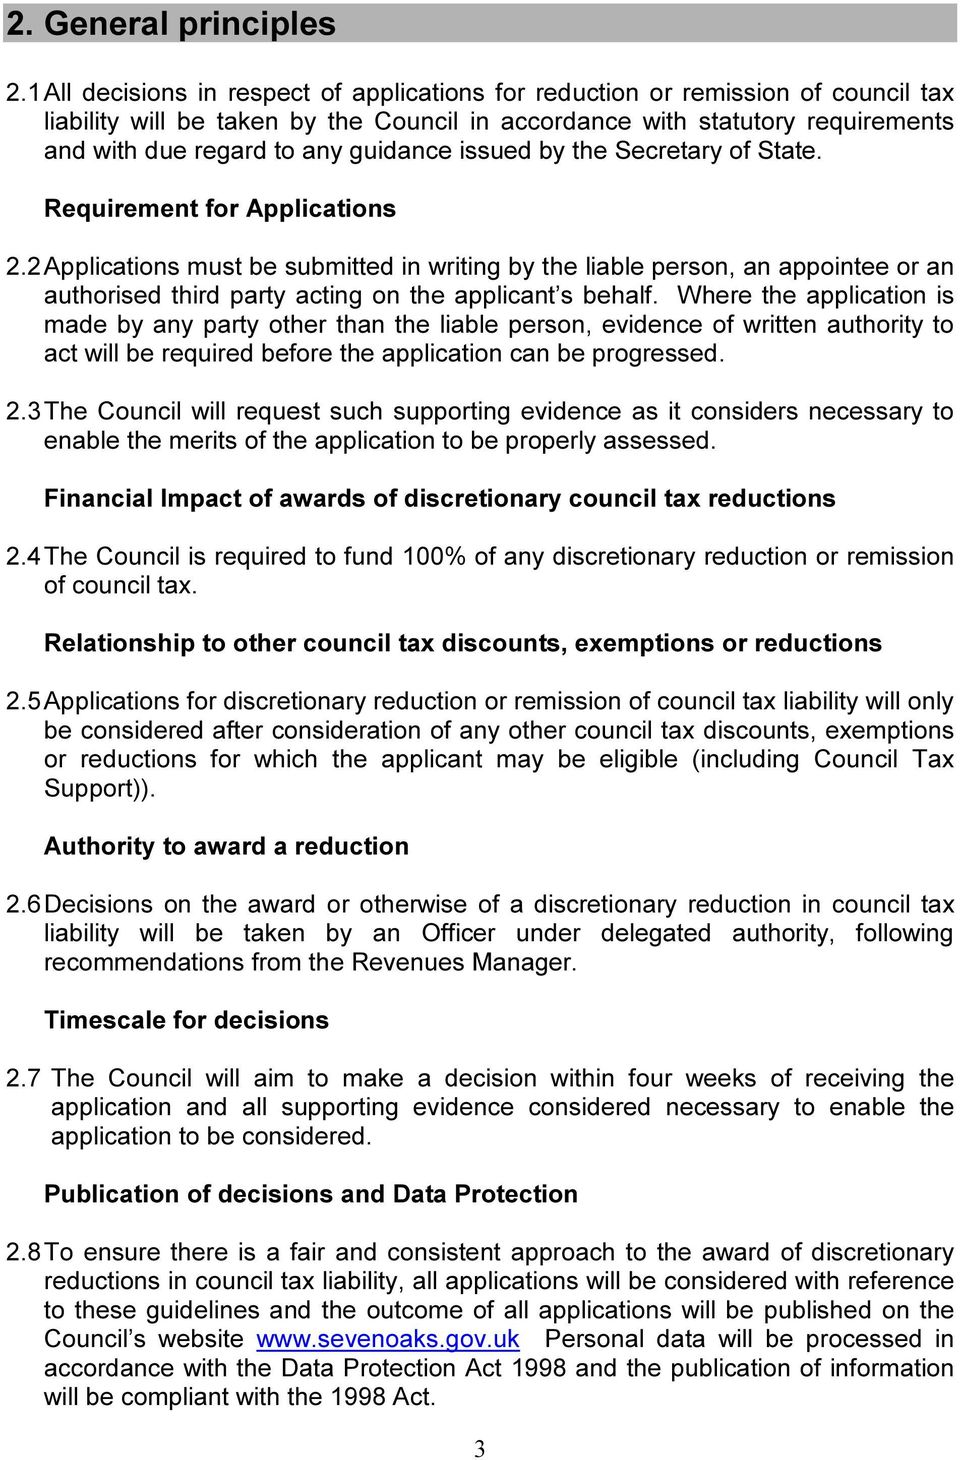 guidance issued by the Secretary of State. Requirement for Applications 2.